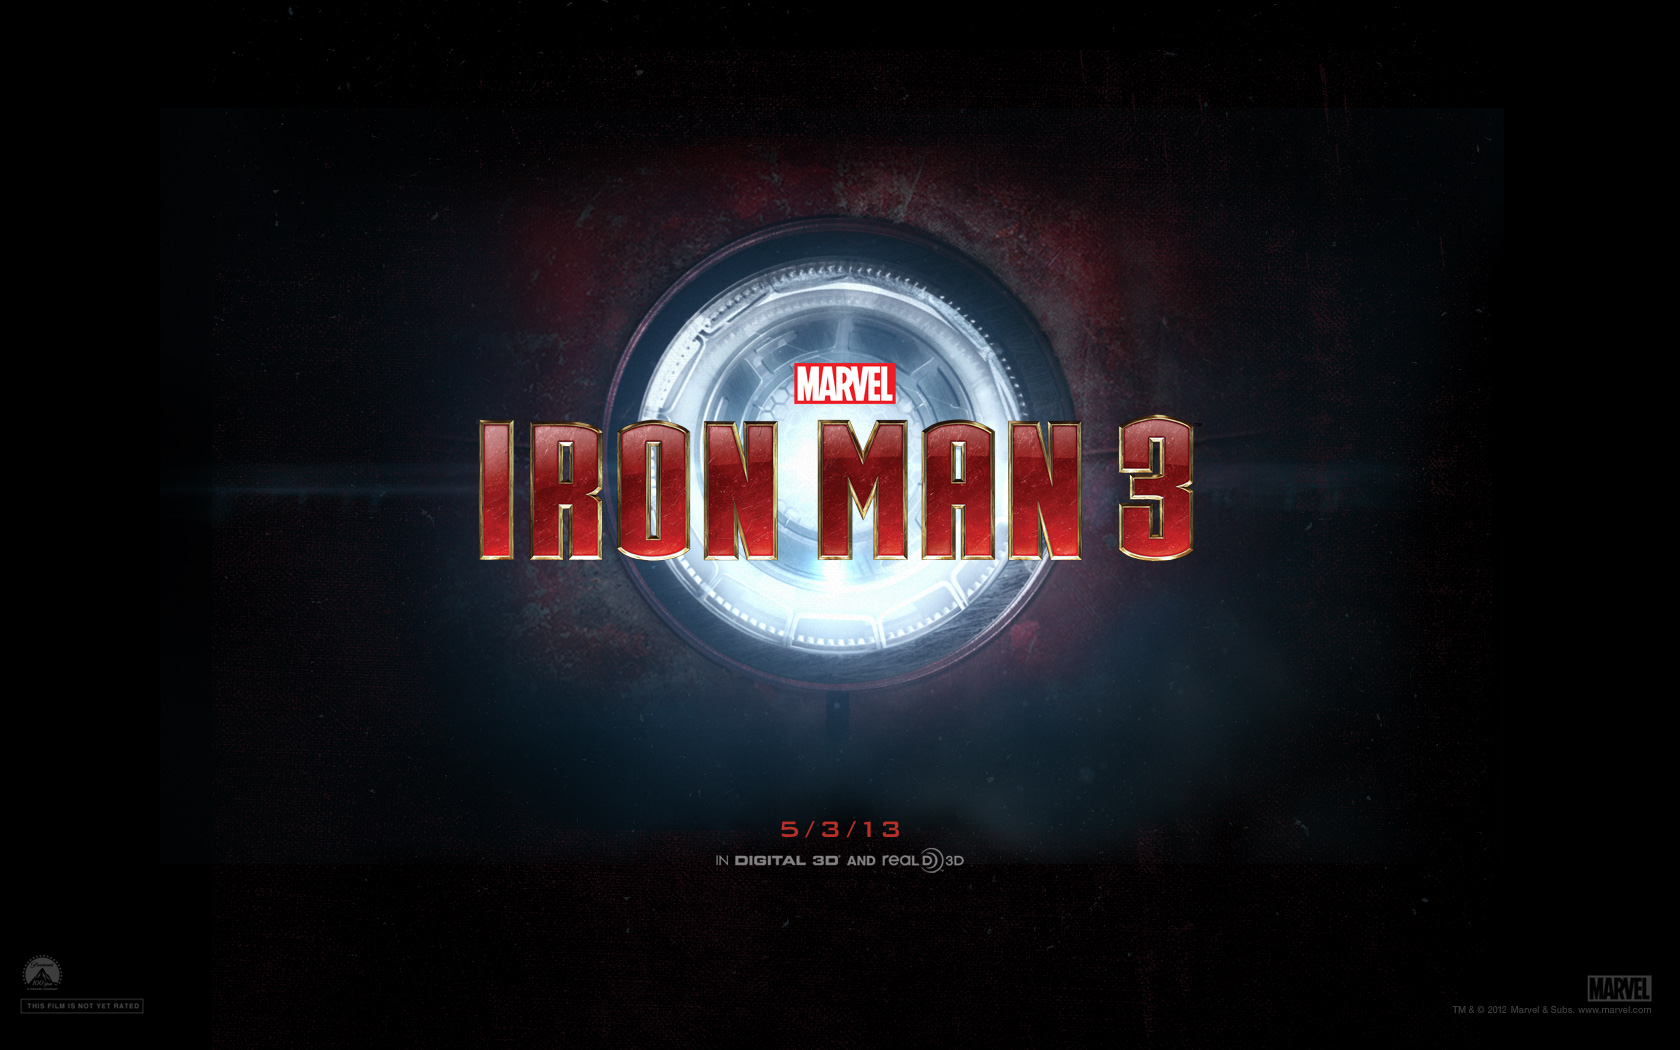 most awaited movie of 2013 | marvel iron man 3 hd wallpapers, movie